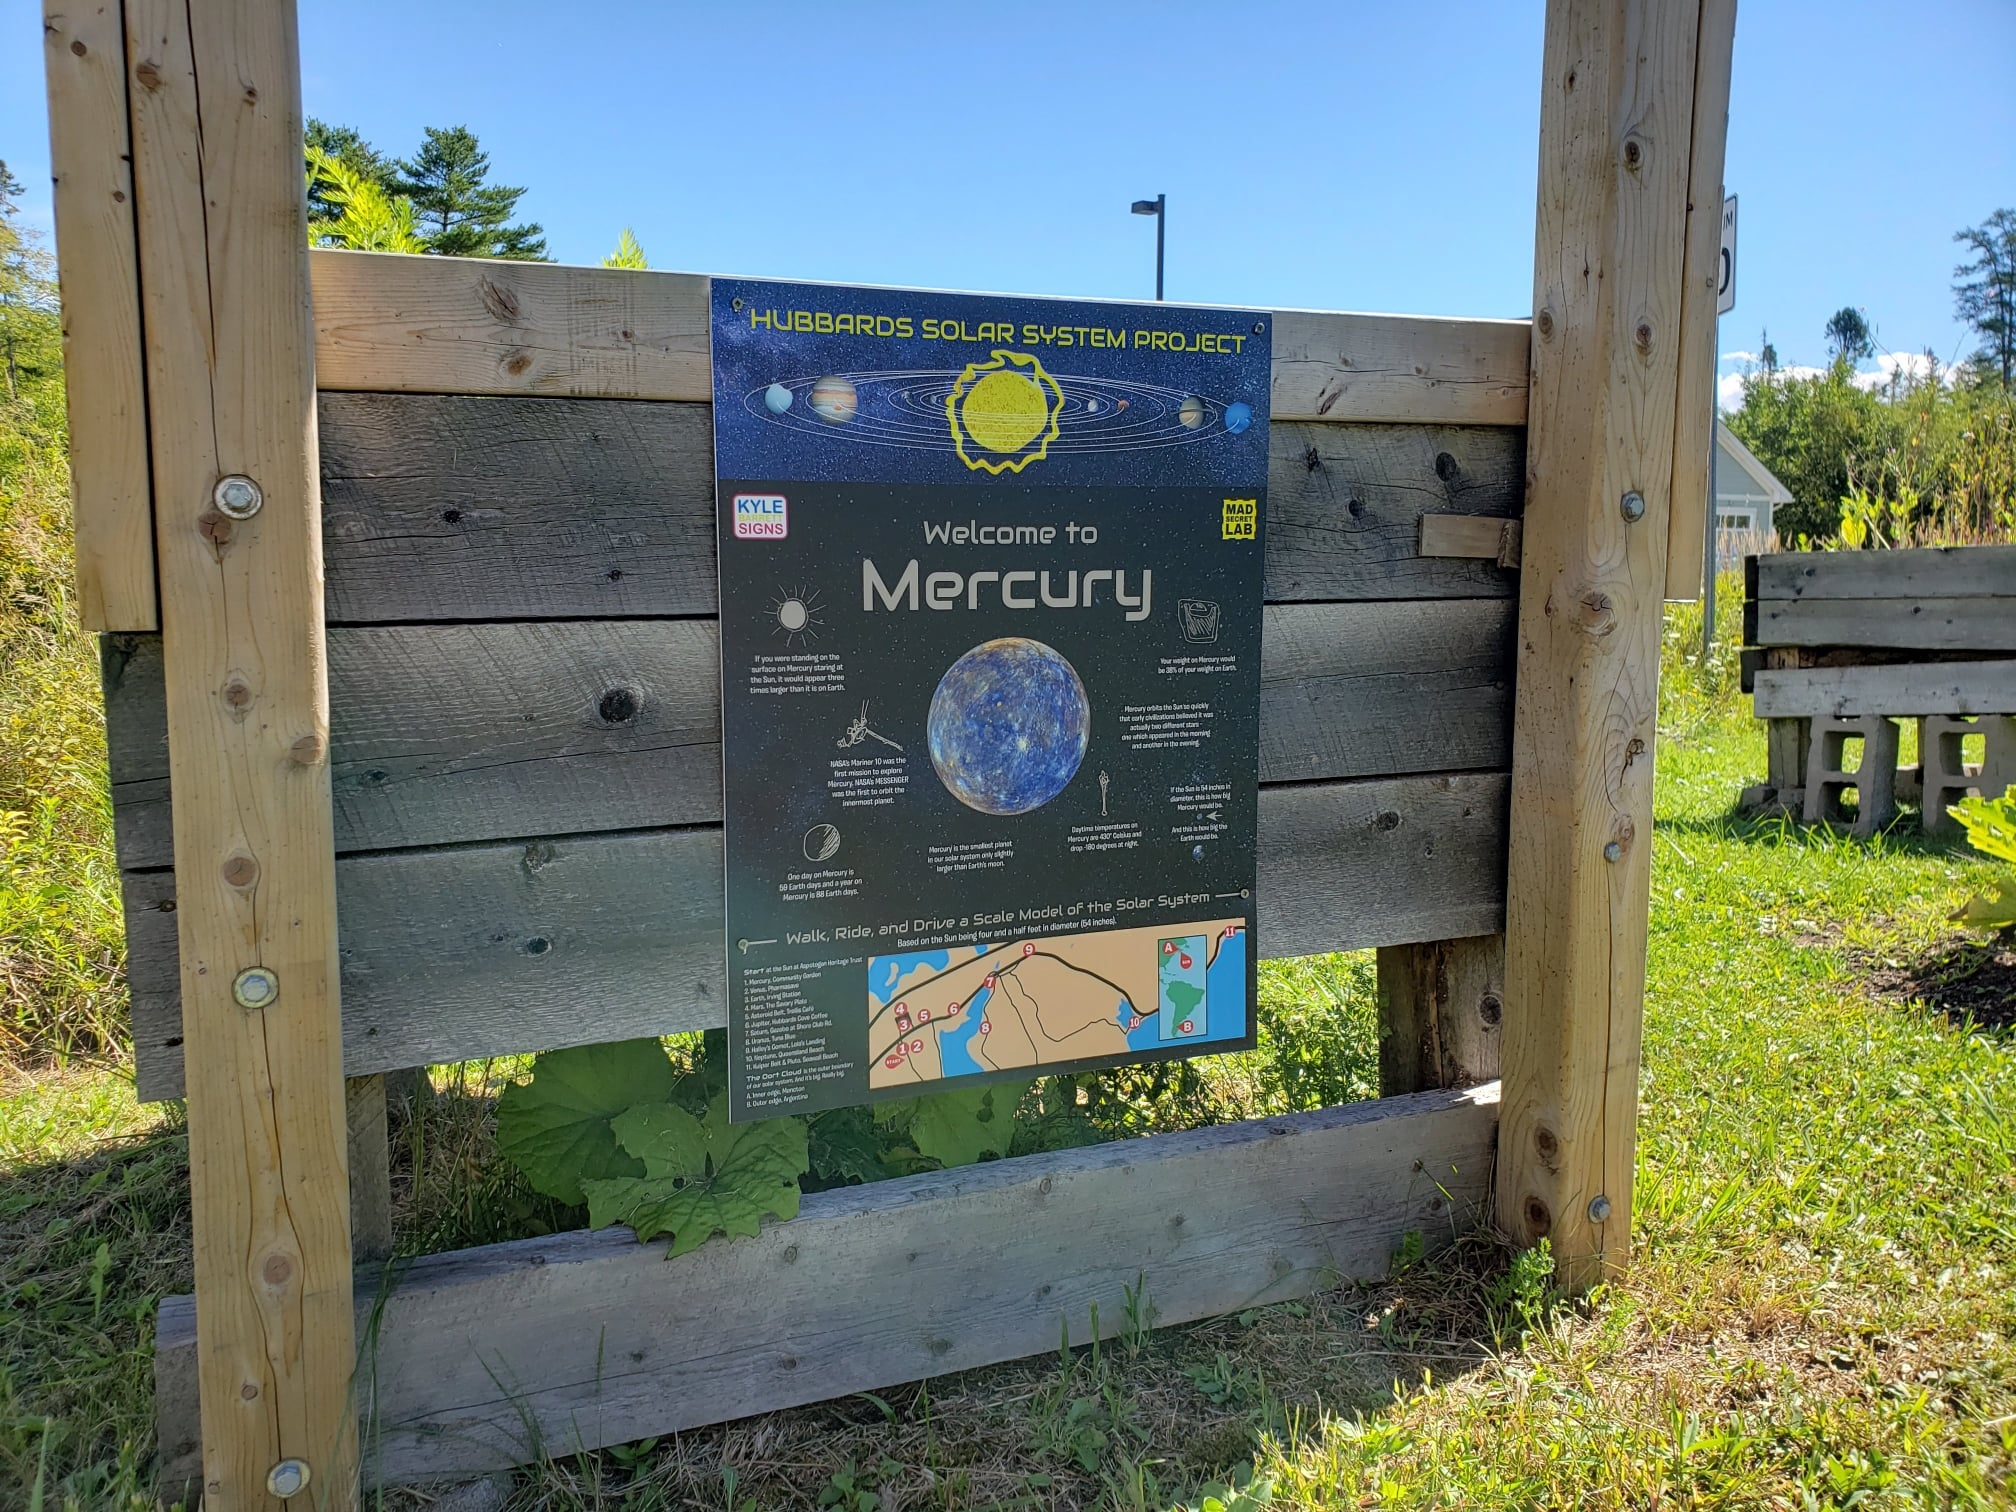 Poster featuring the planet Mercury